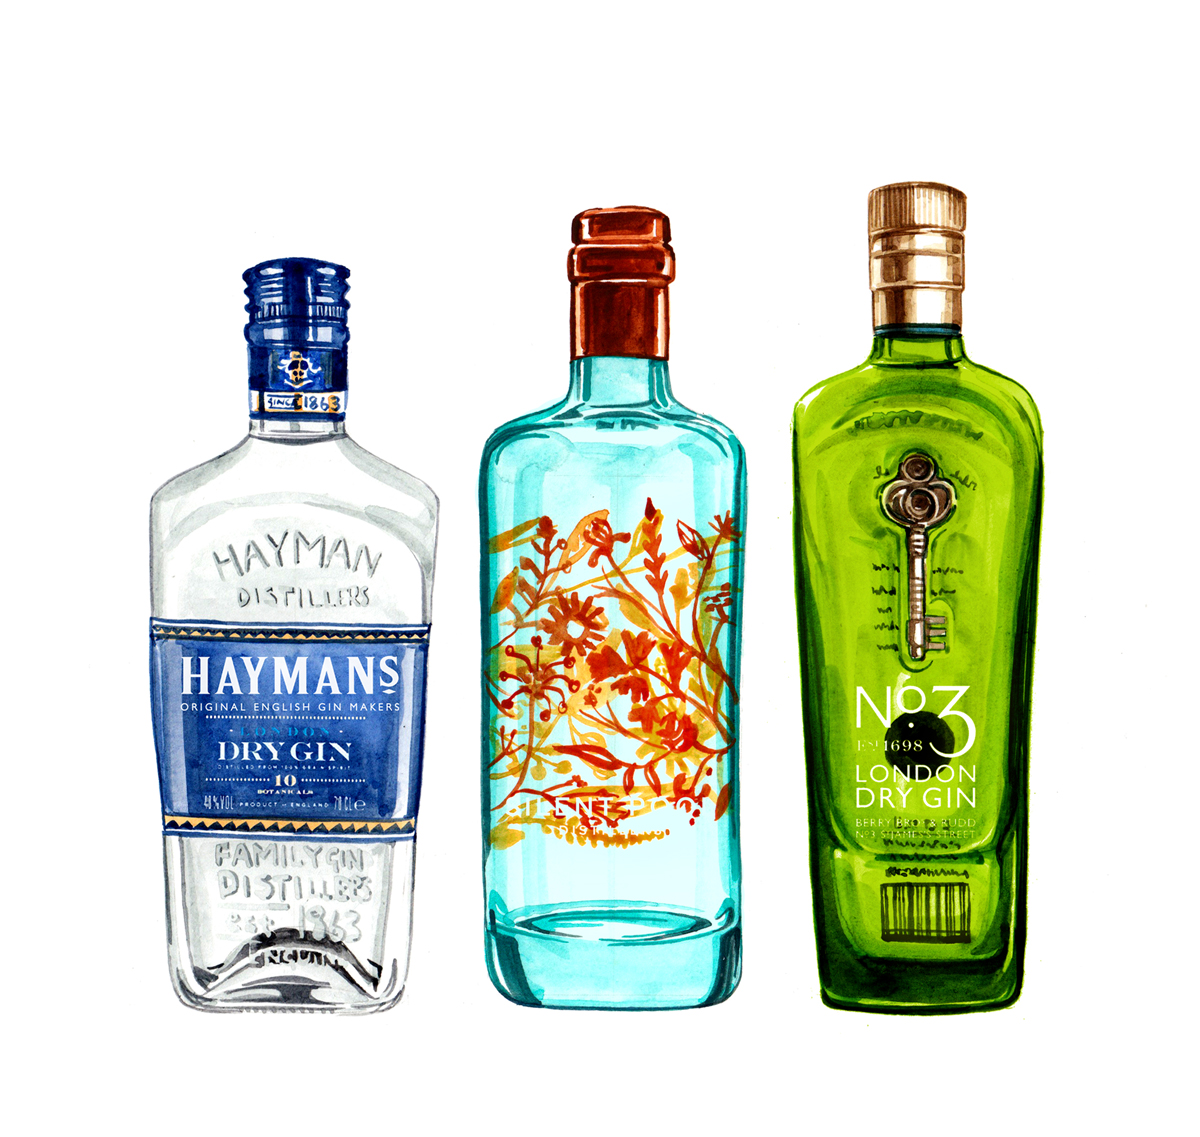 Food illustration and gin